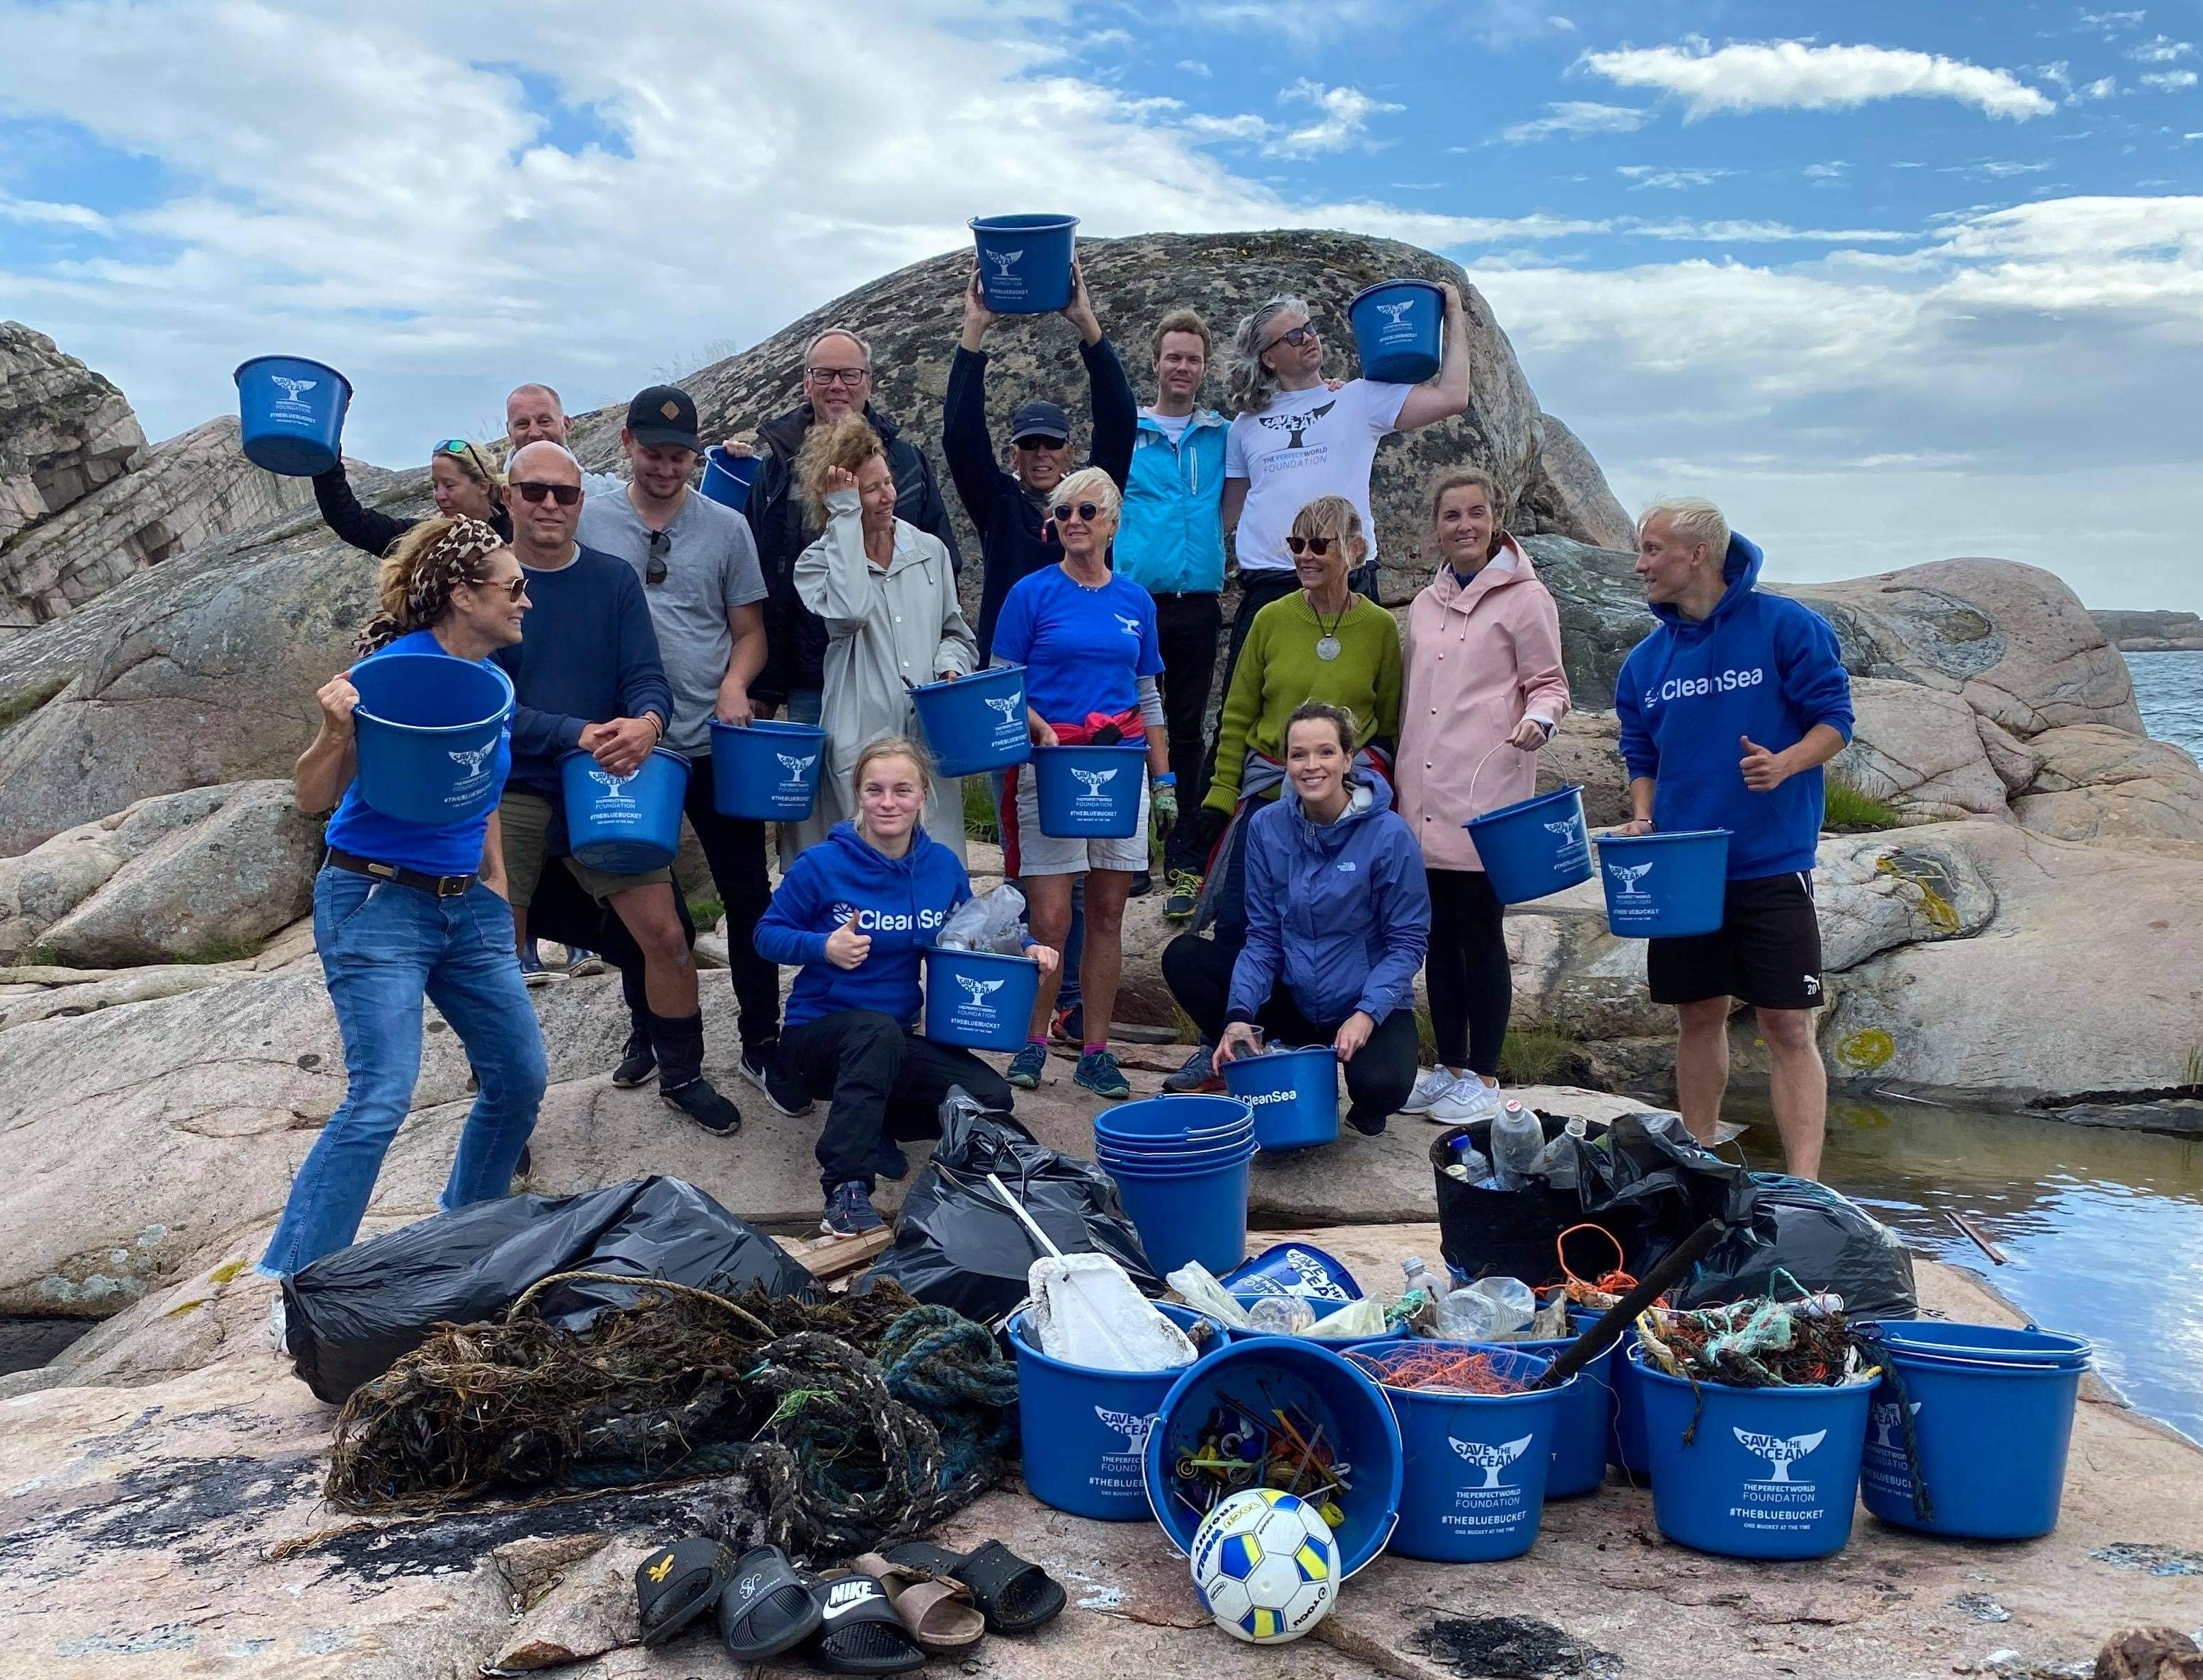 CleanSea cleanup with The Perfect World Foundation in Bohuslän, Sweden